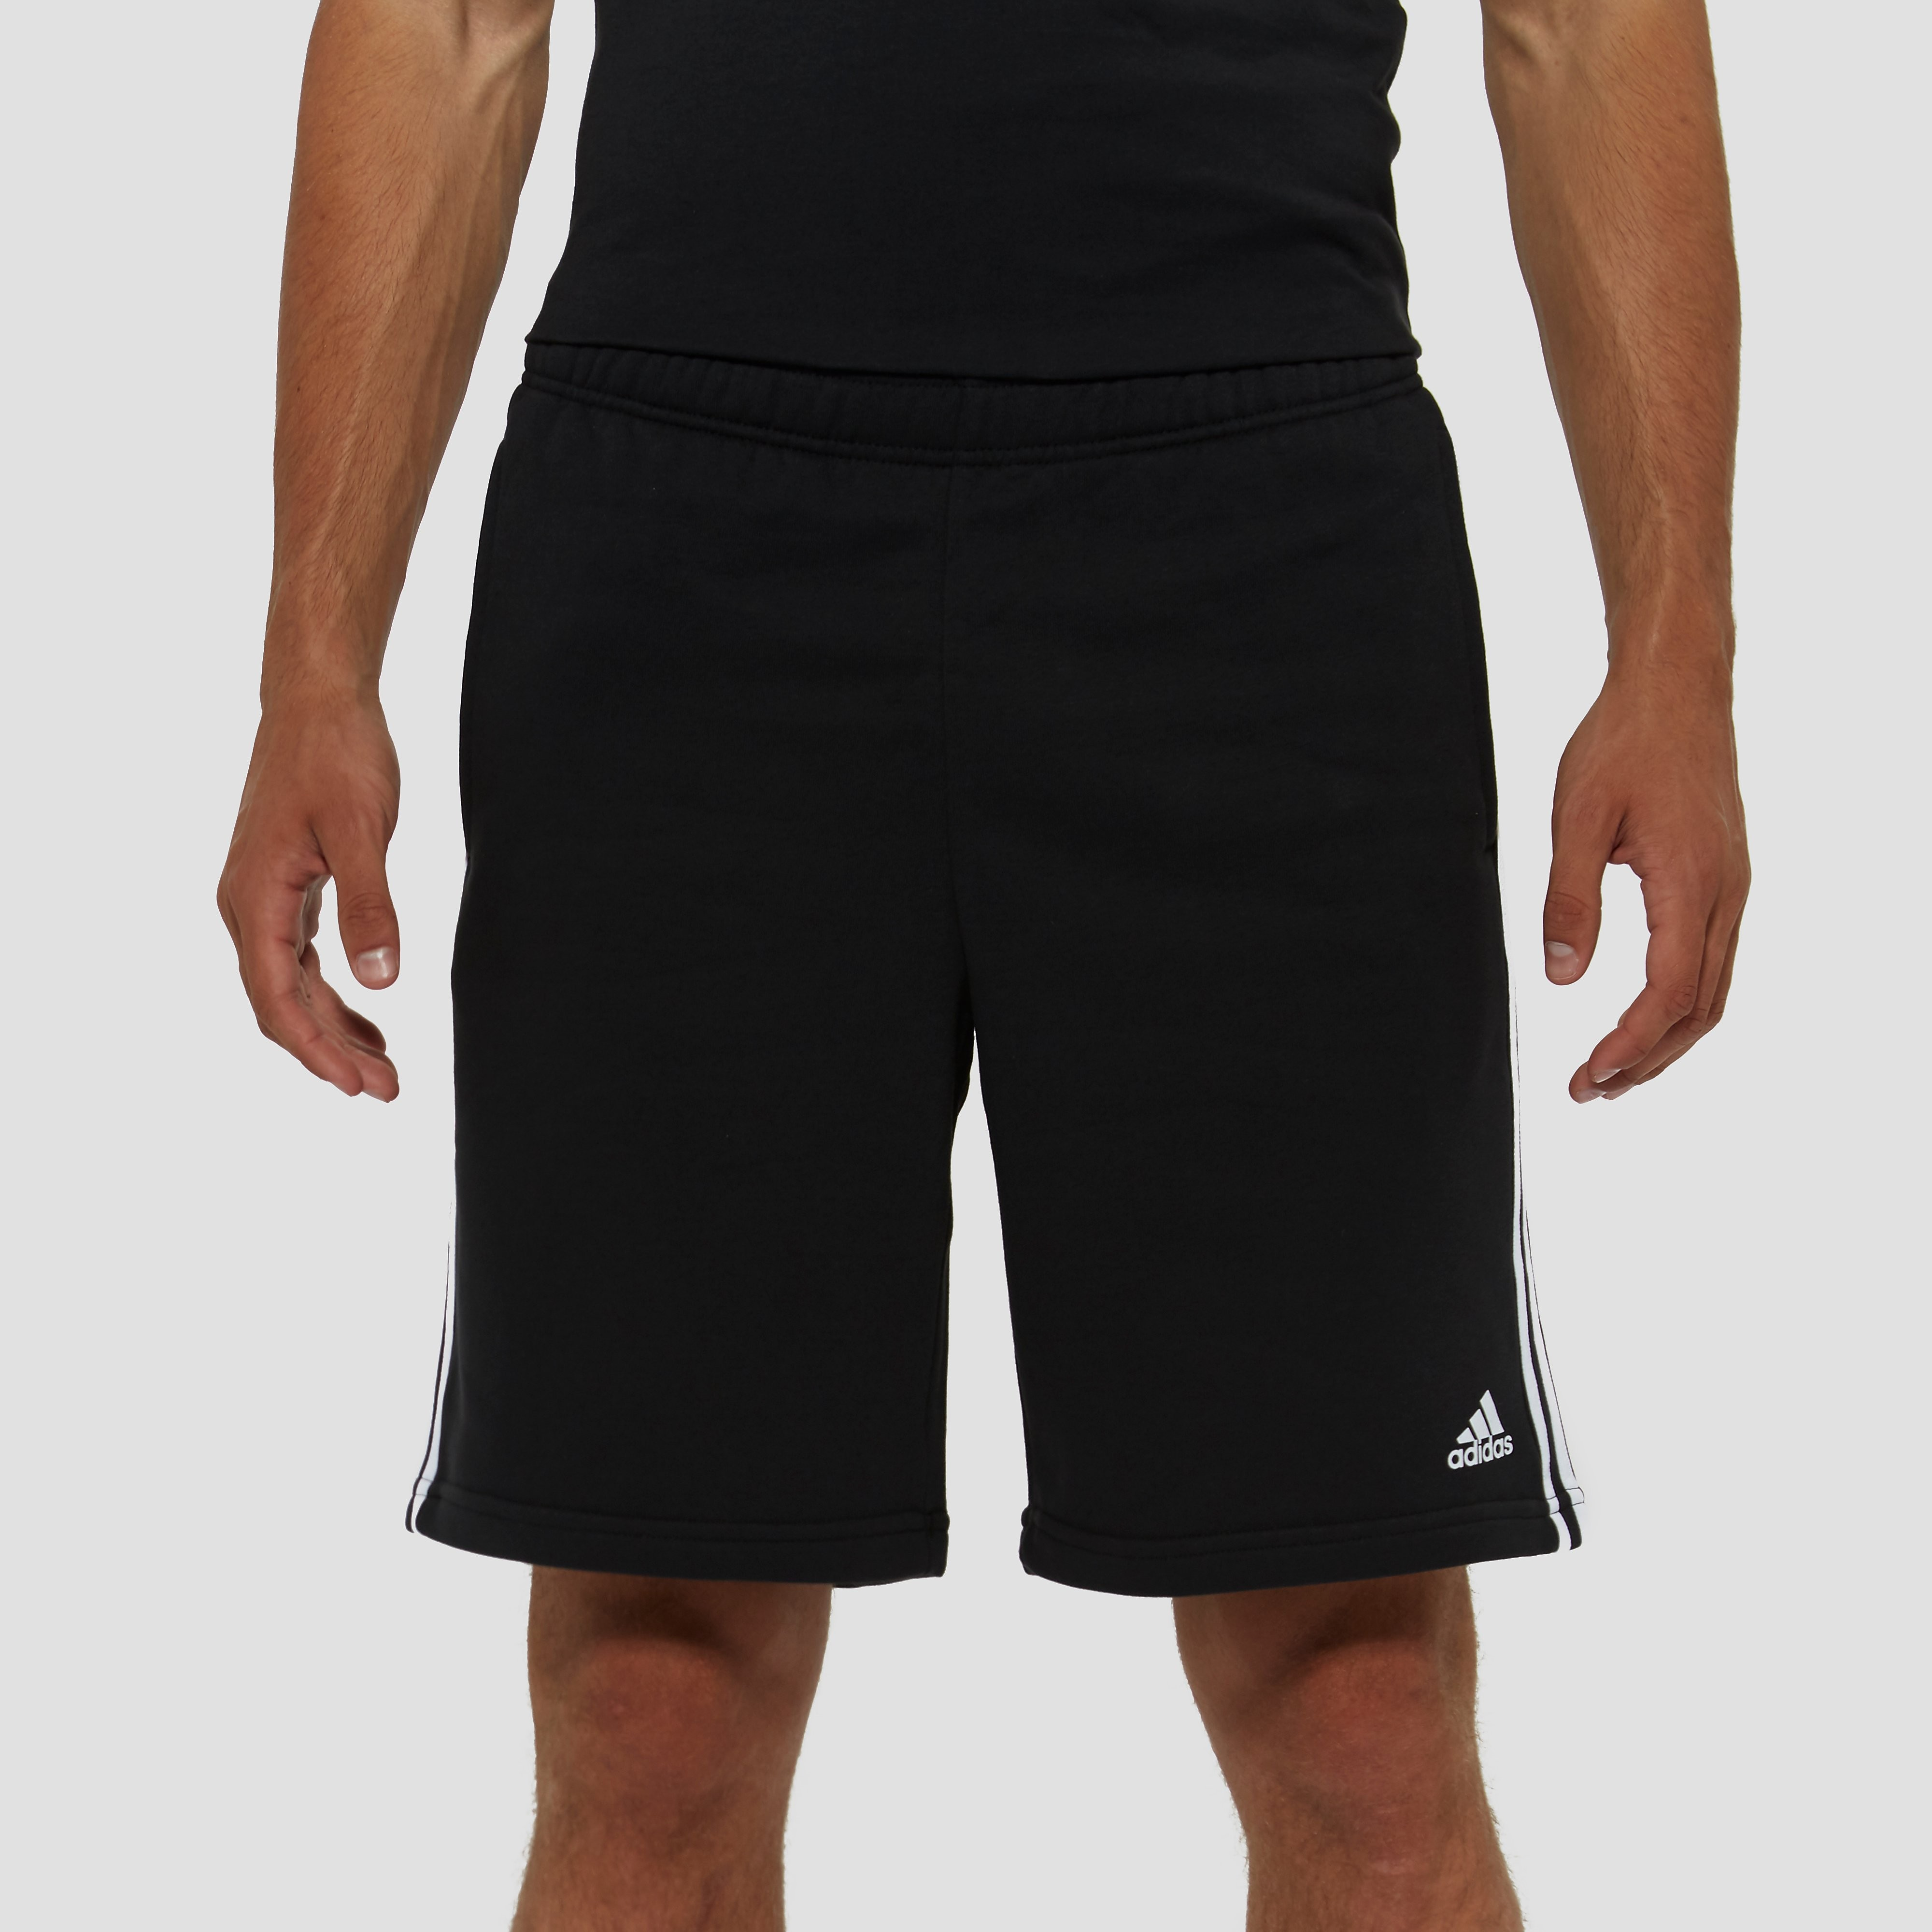 Mens Essentials Sportbroekje Zwart Heren Black. Size XXXL